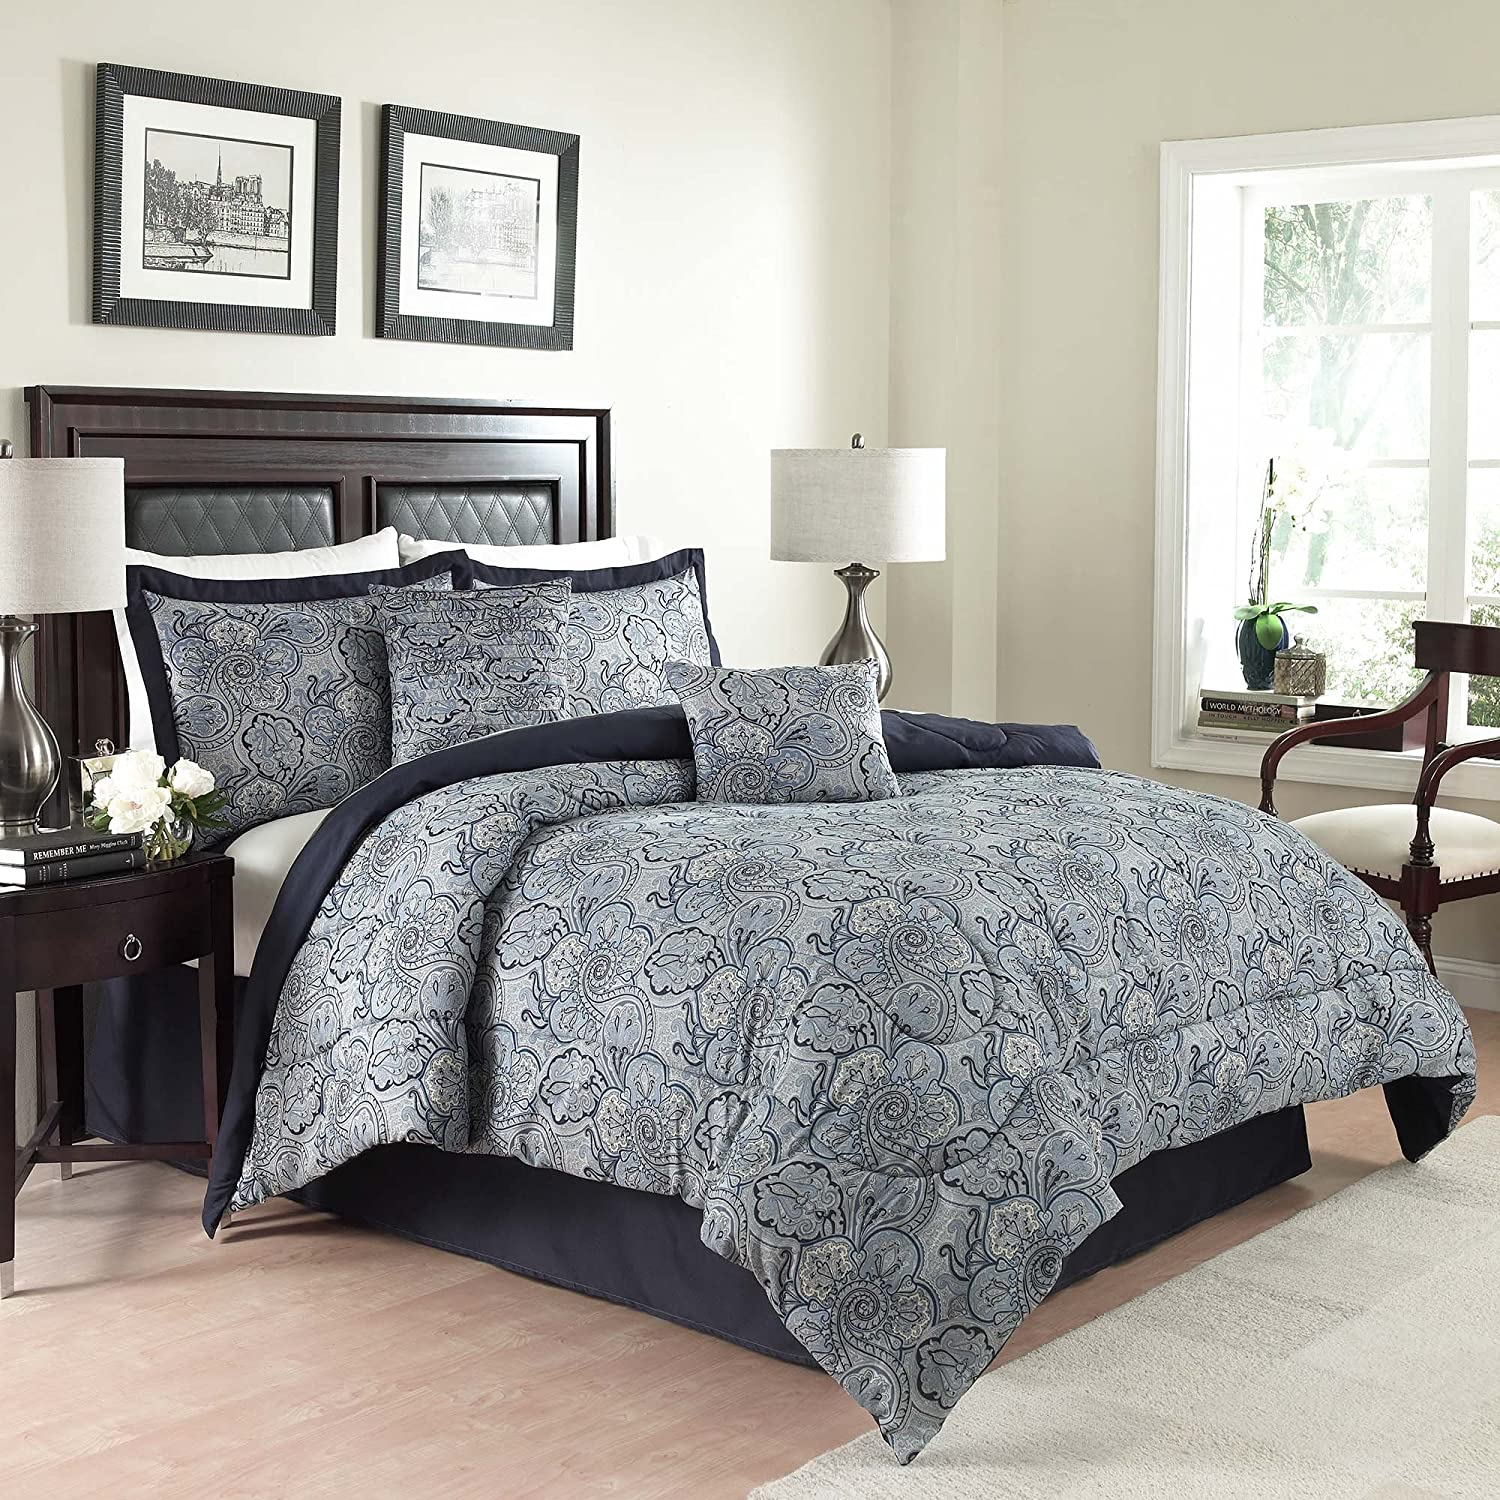 quilt blue bedding quilts flower covers discount wit oblong away sets pillow duvet bedspreads waverly